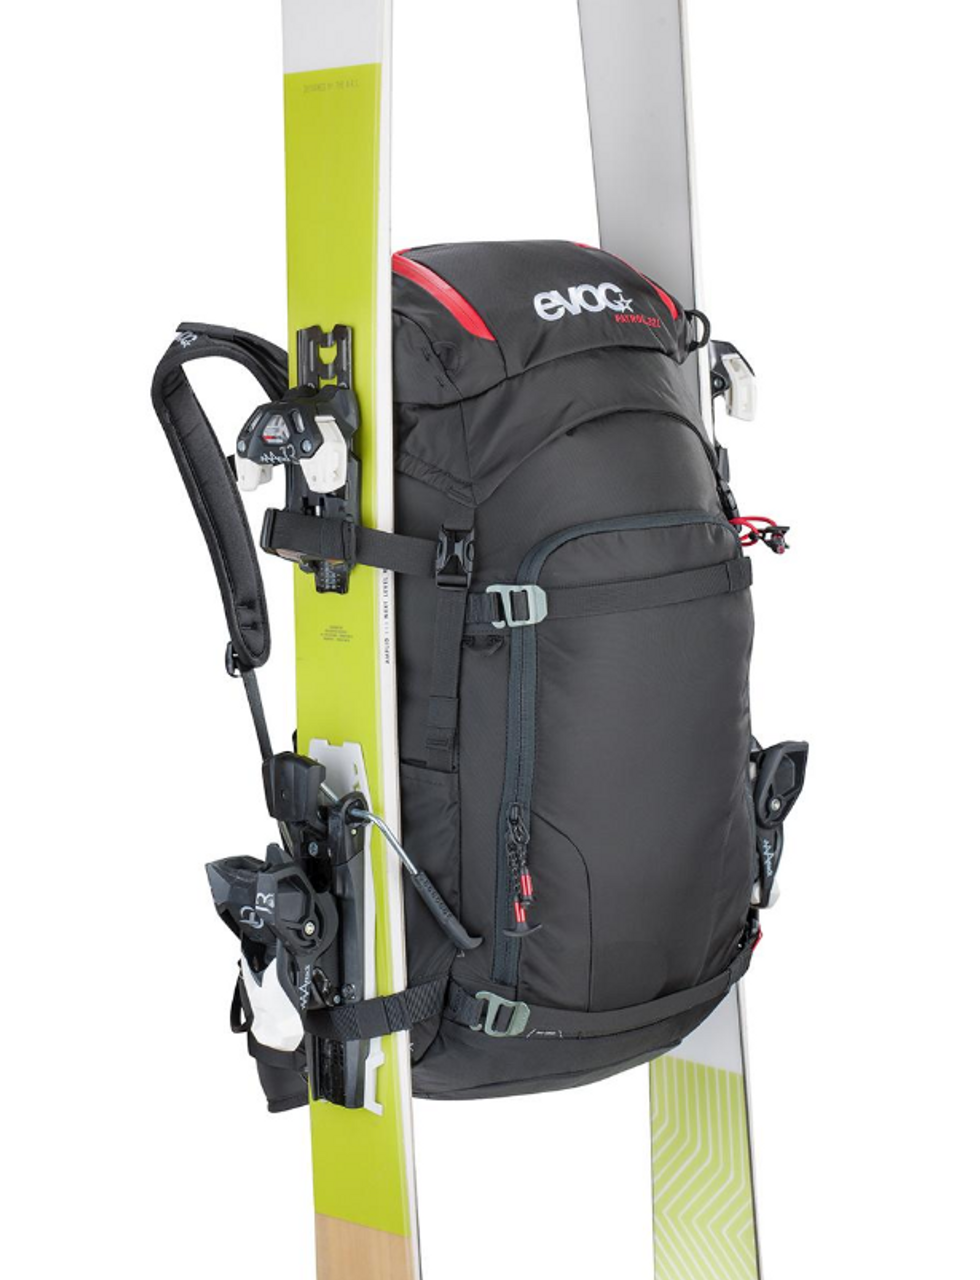 32L ski backpack